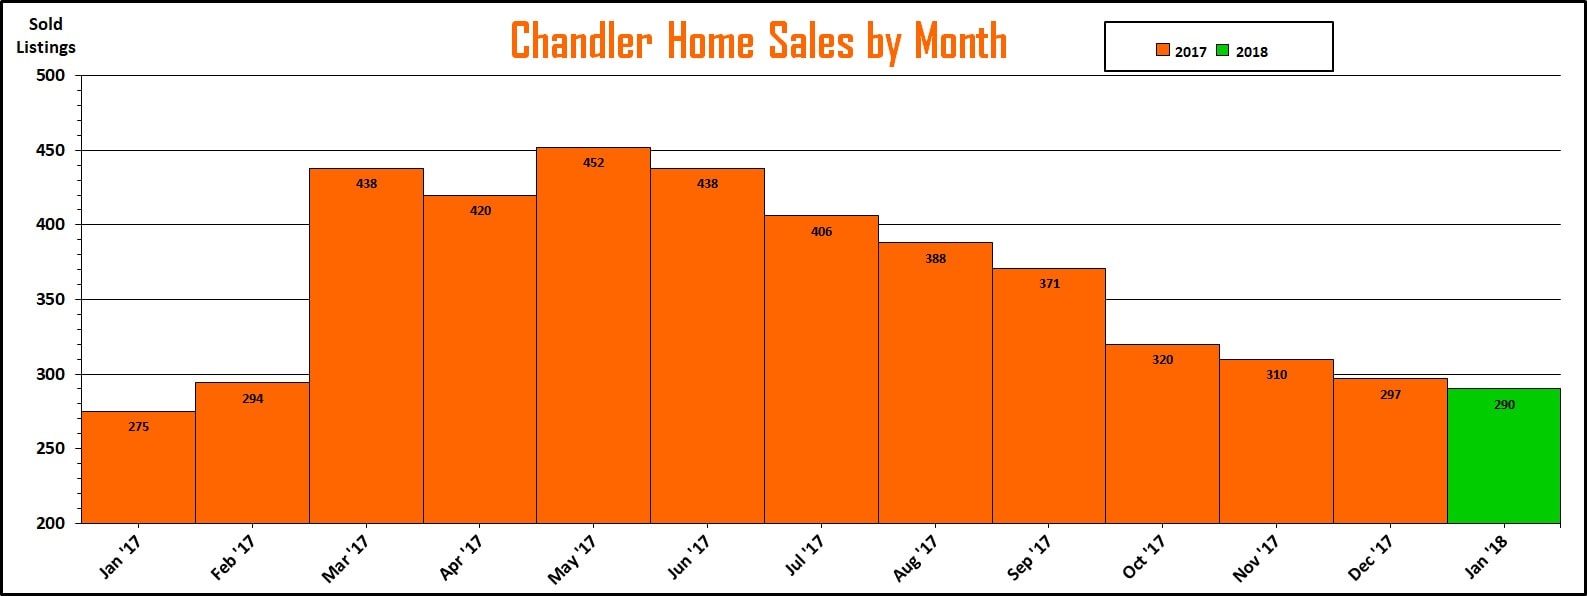 Chandler Market Reports - Chandler Home Sales by Month